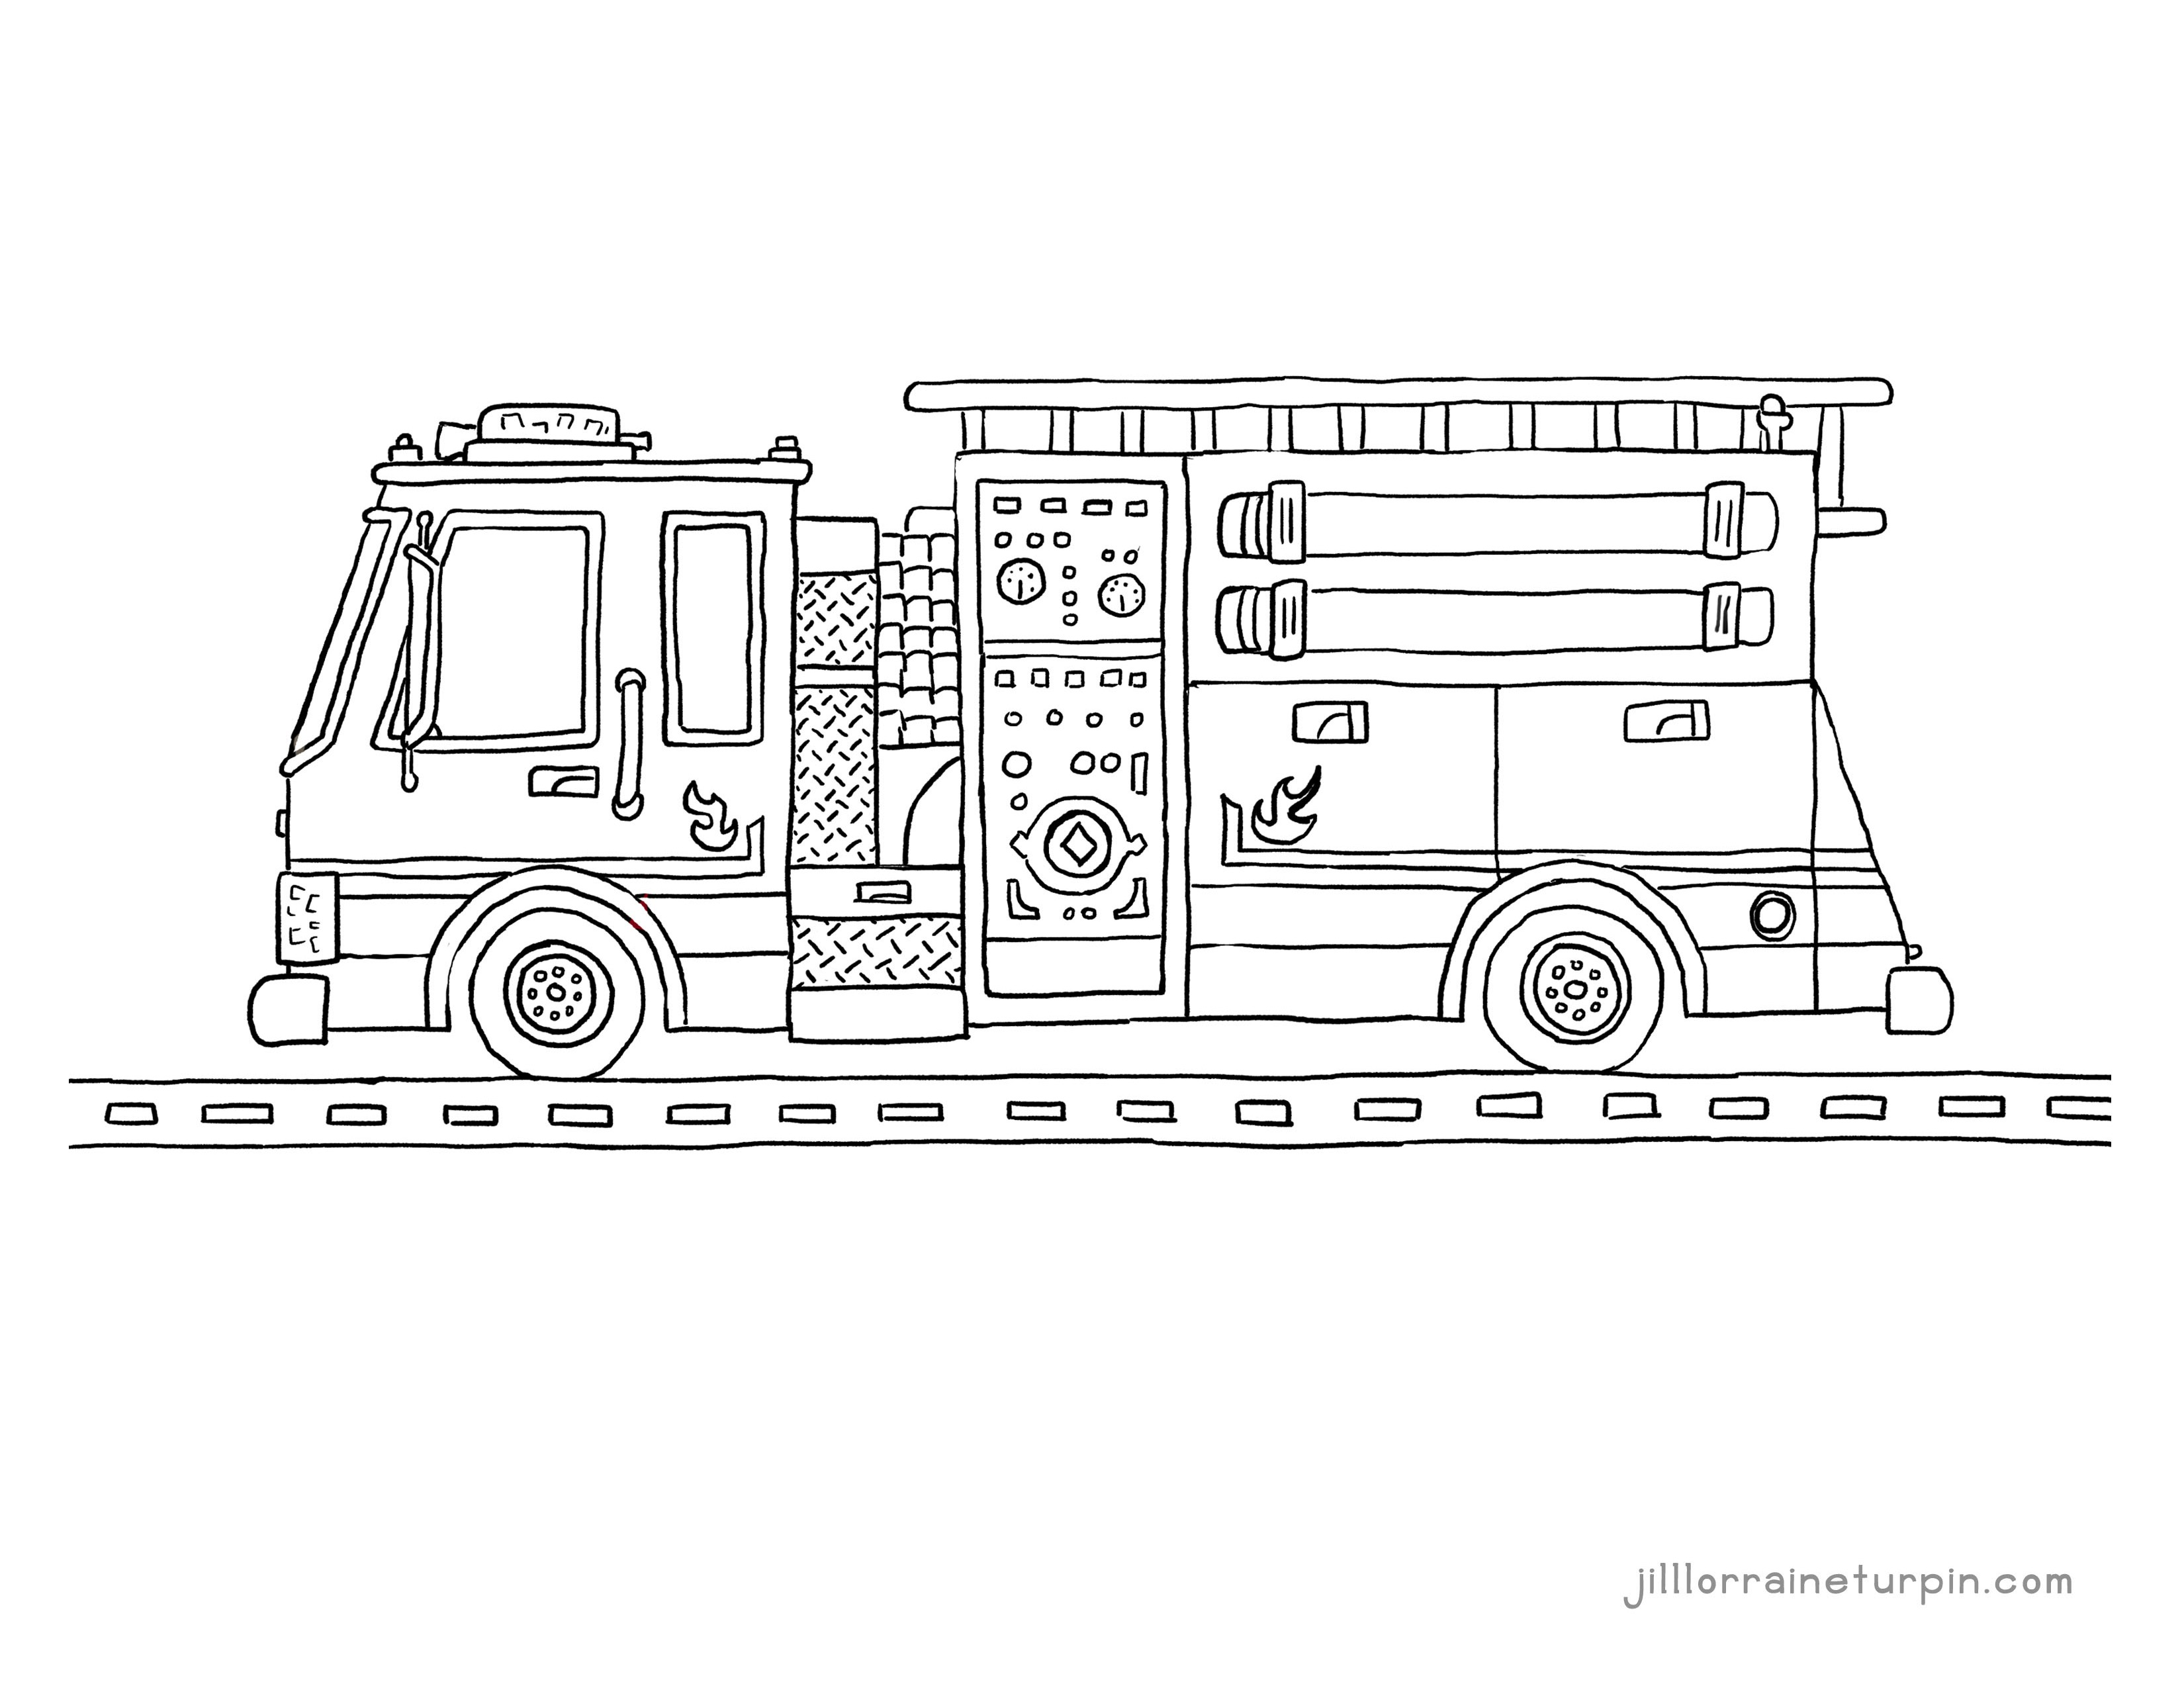 Free Printable Fire Truck Coloring Pages – My Very Own Fire Truck